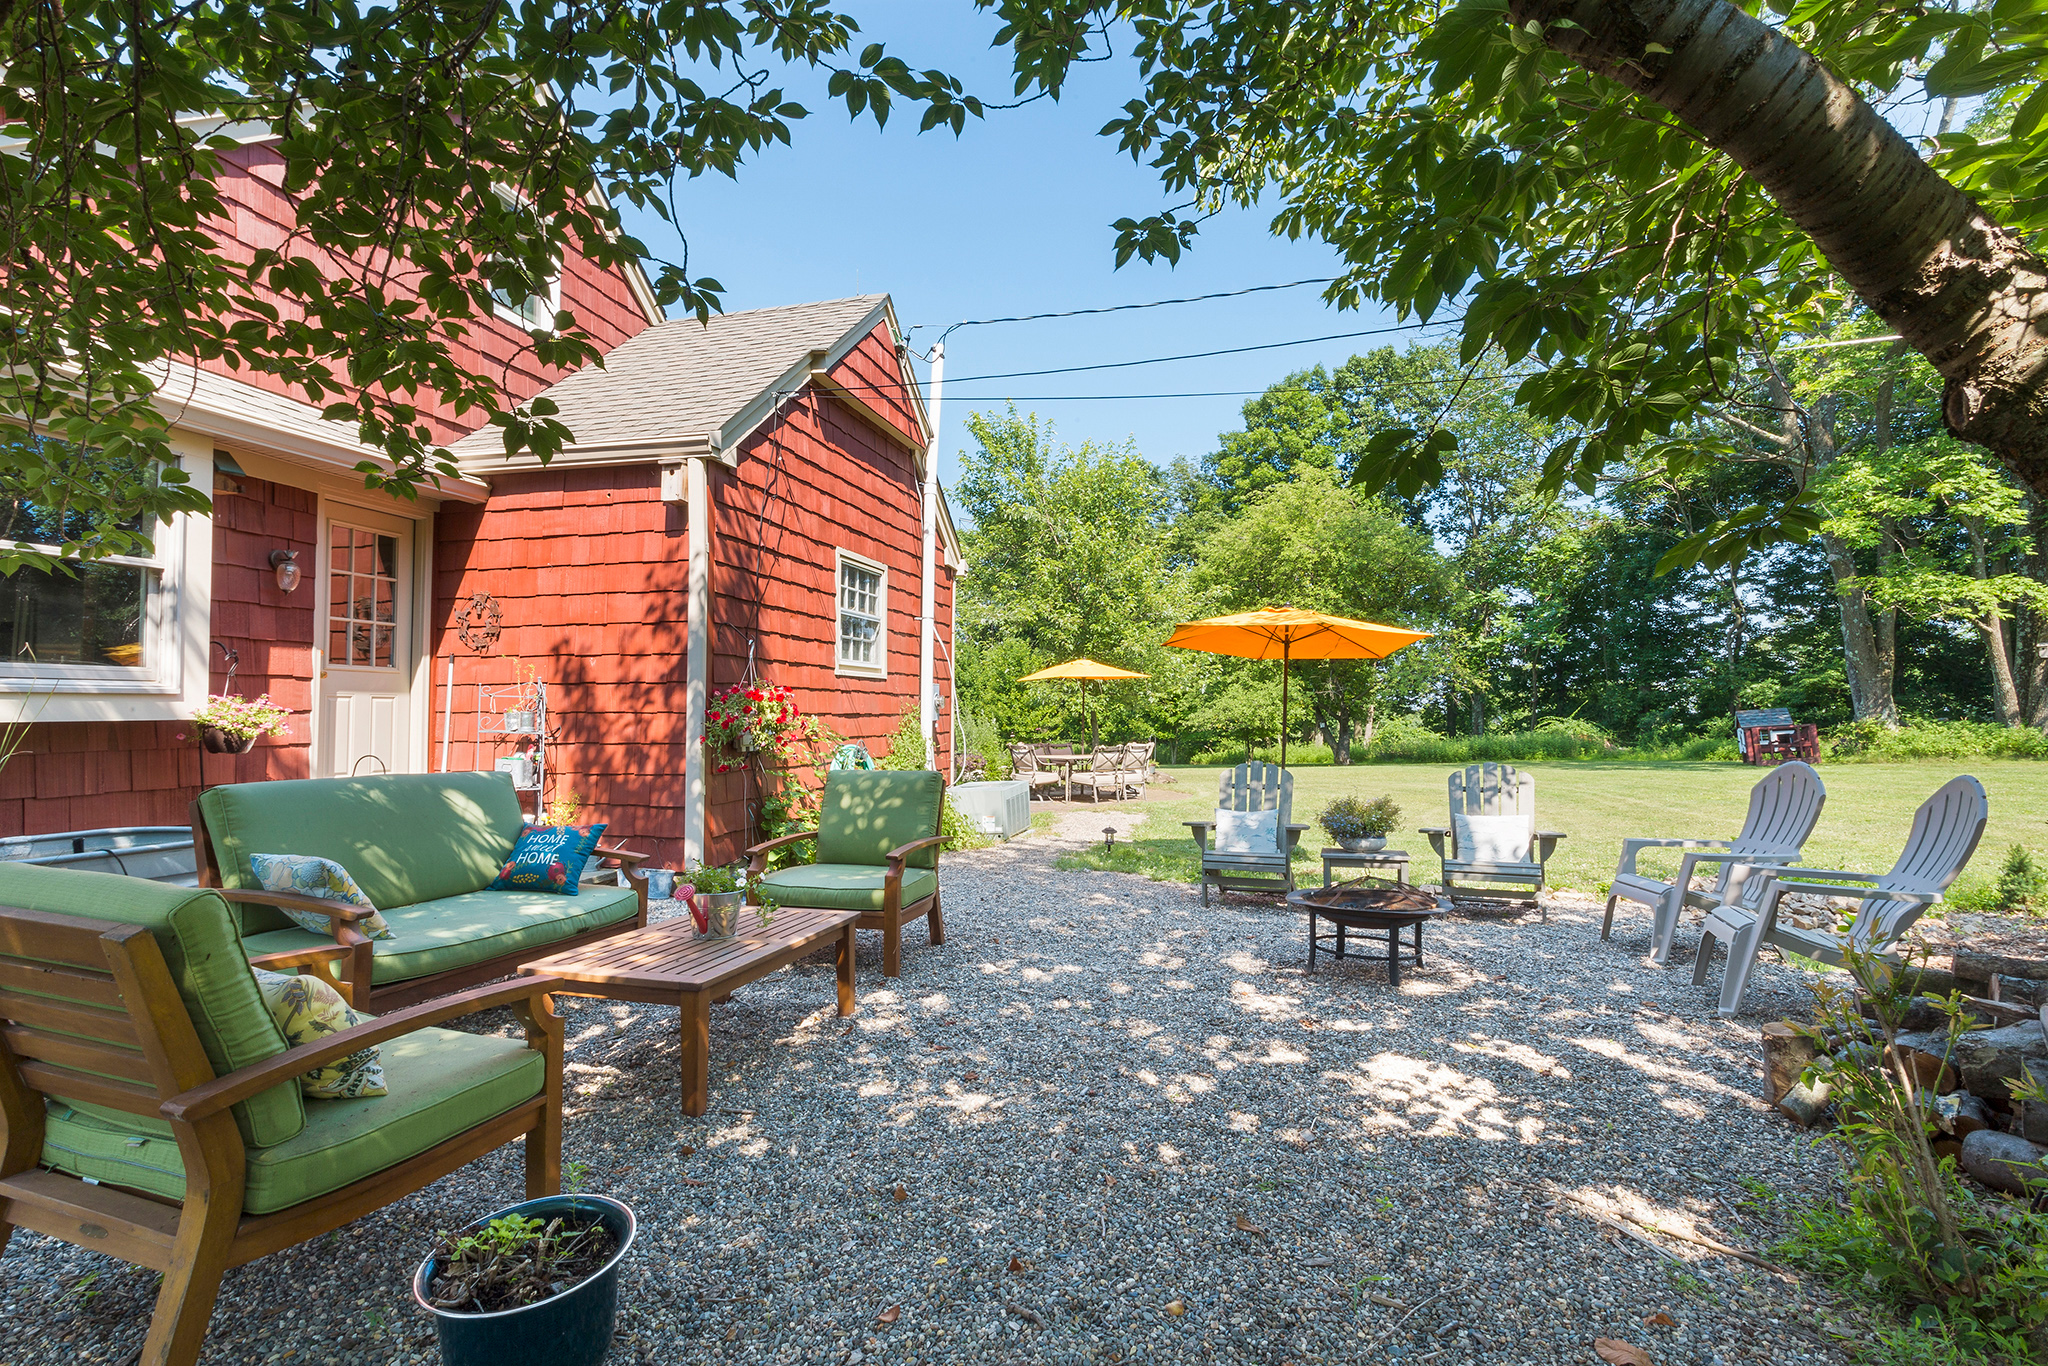 14A 7 Scarlet Oak Road Tewksury Township — Side Yard Sitting Area